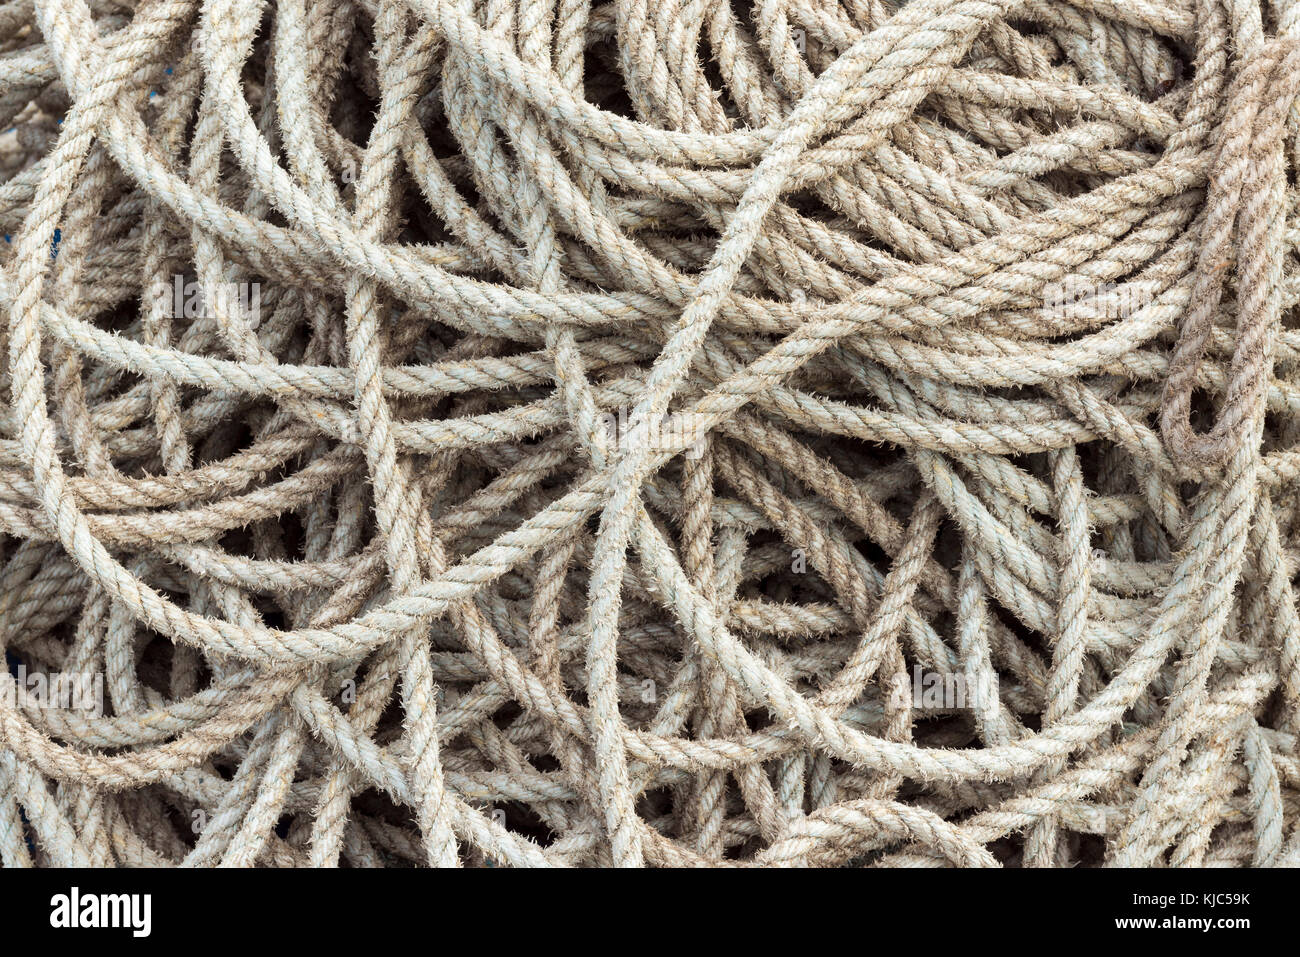 Close-up of a pile of rope in the harbor at Seahouses in Northumberland, England, United Kingdom - Stock Image